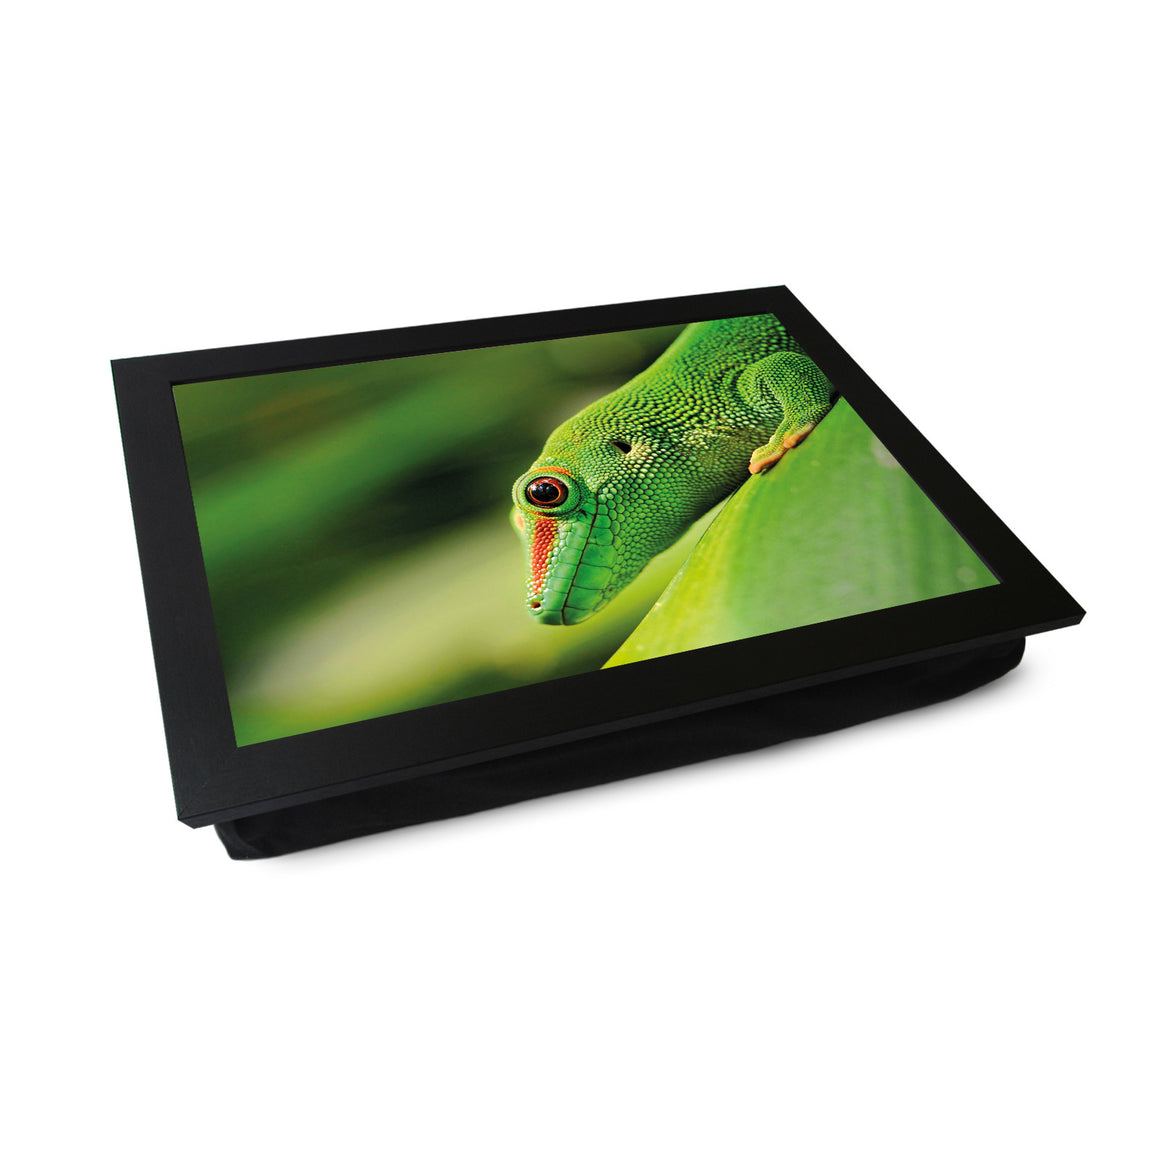 Green Gecko Lap Tray - L0101